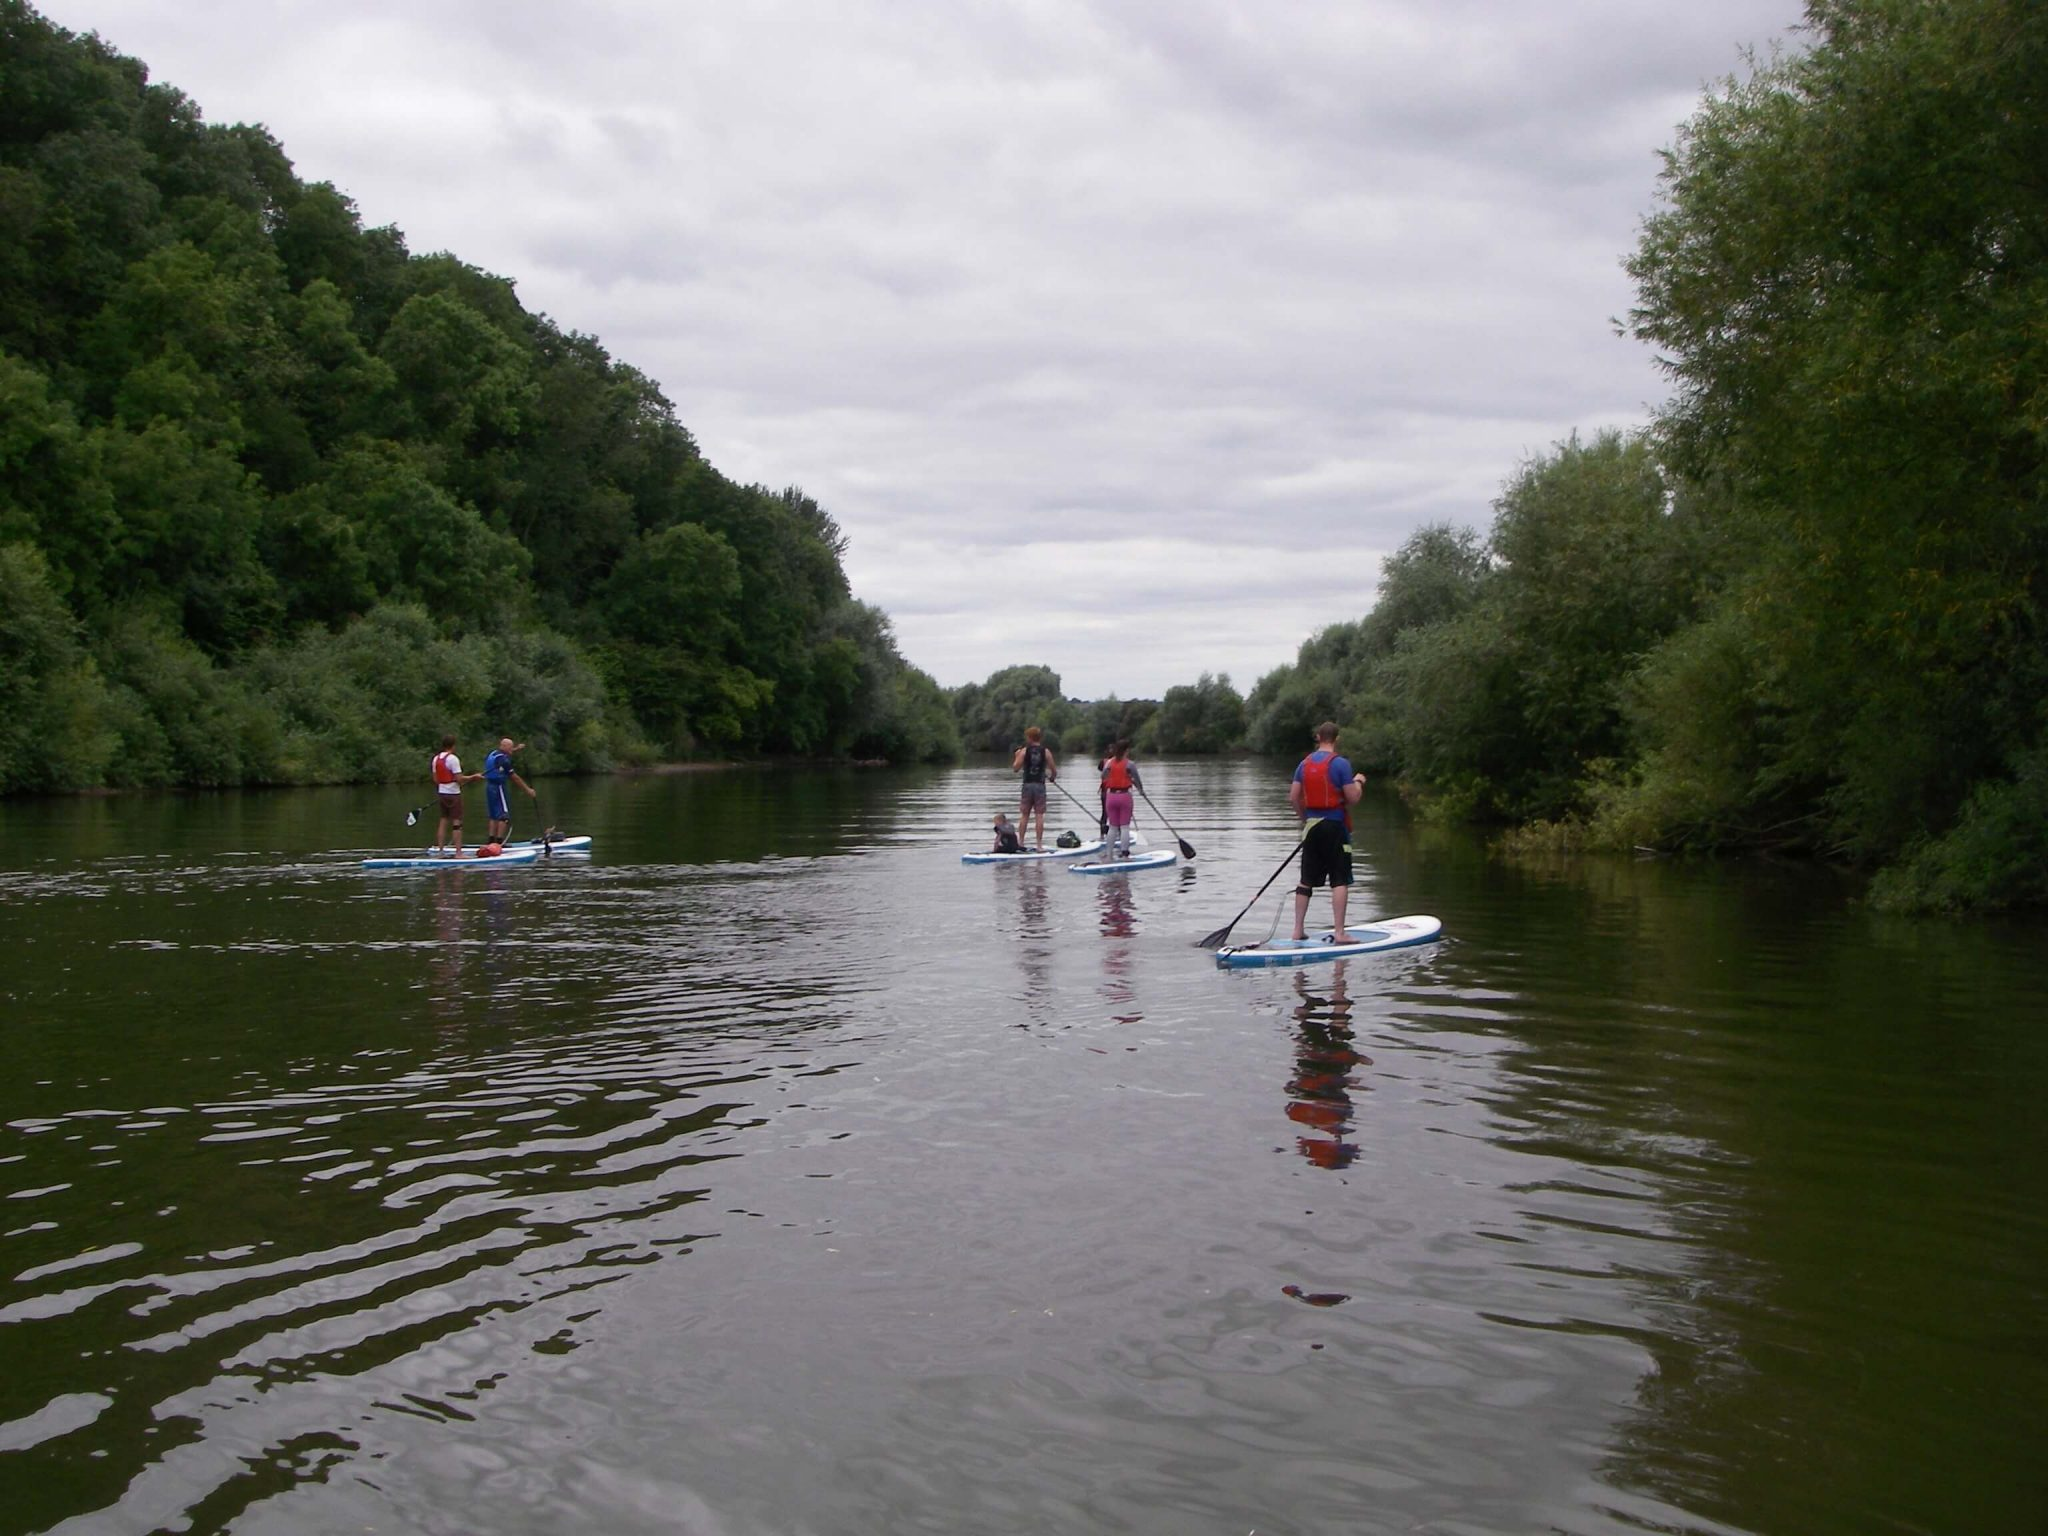 Sunday Beginner 10am River Lesson